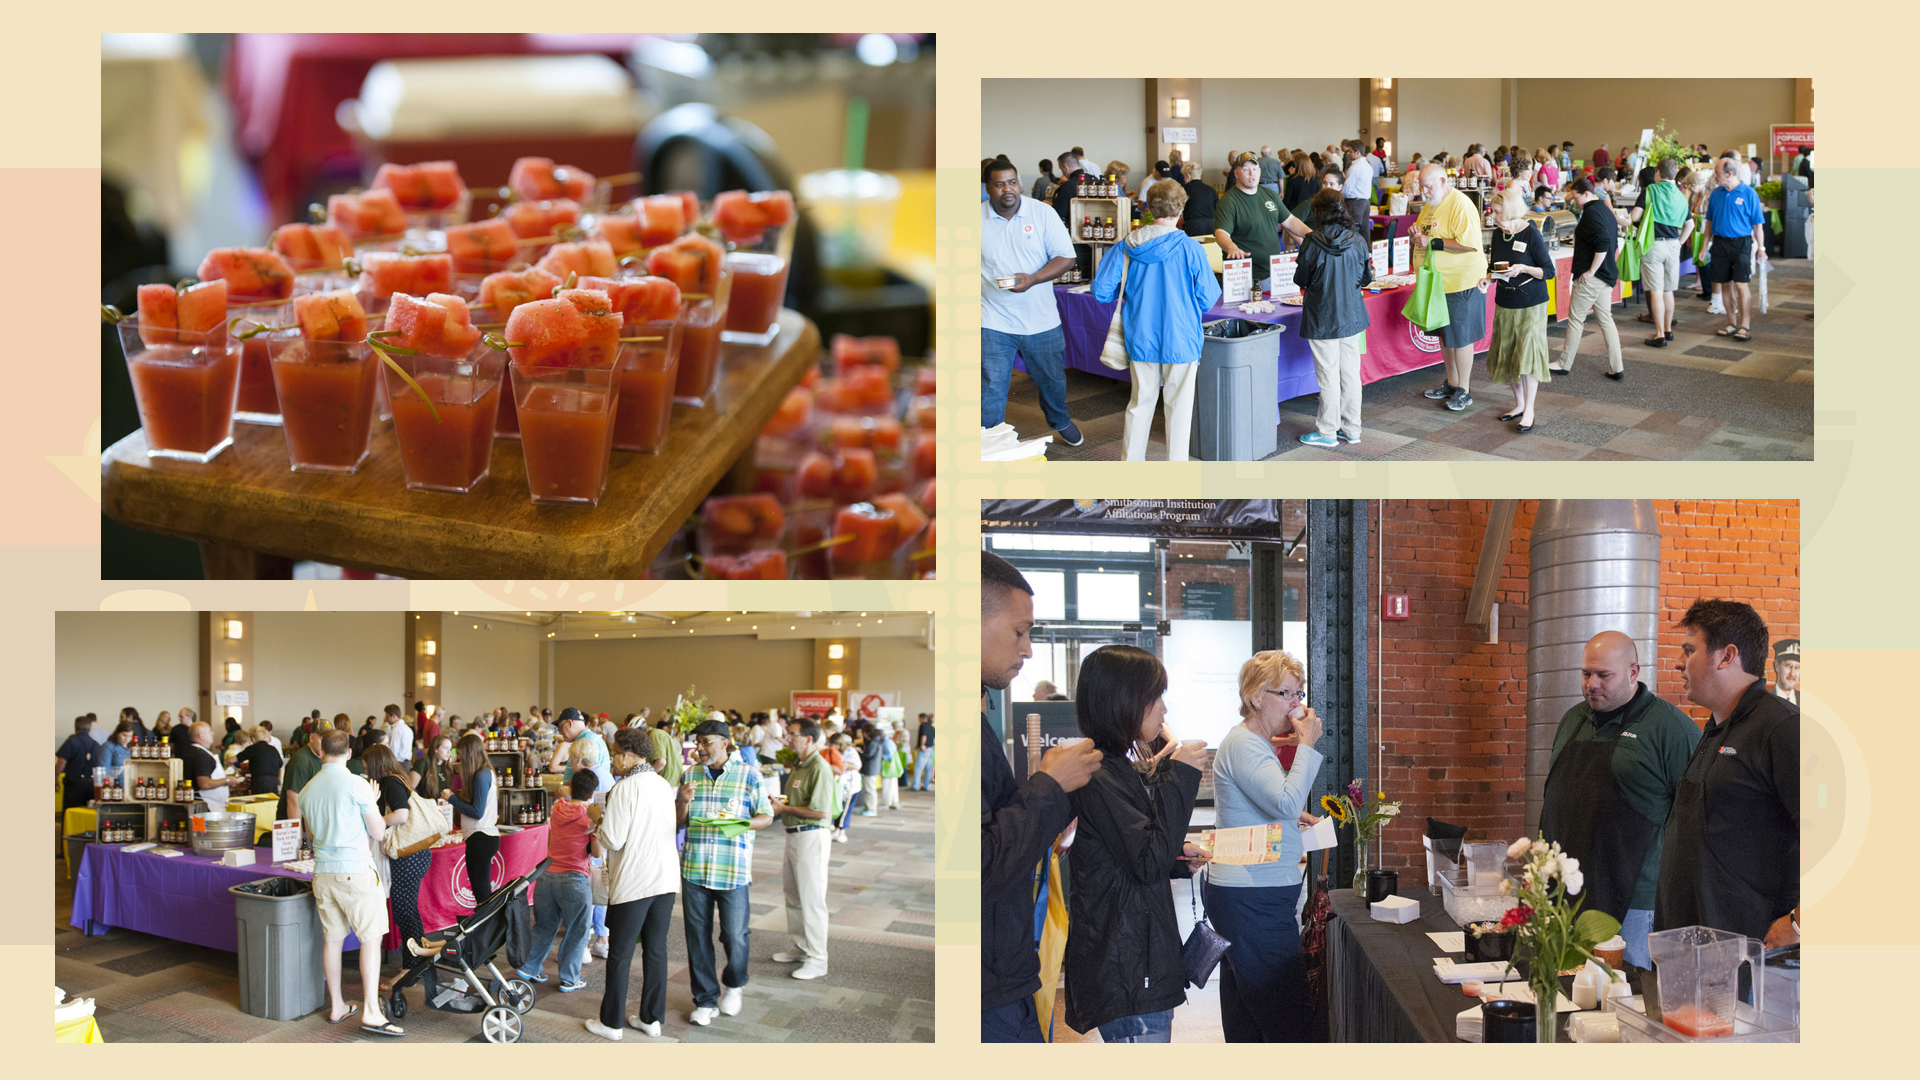 HTHG WQED 2015 crowd and food slide